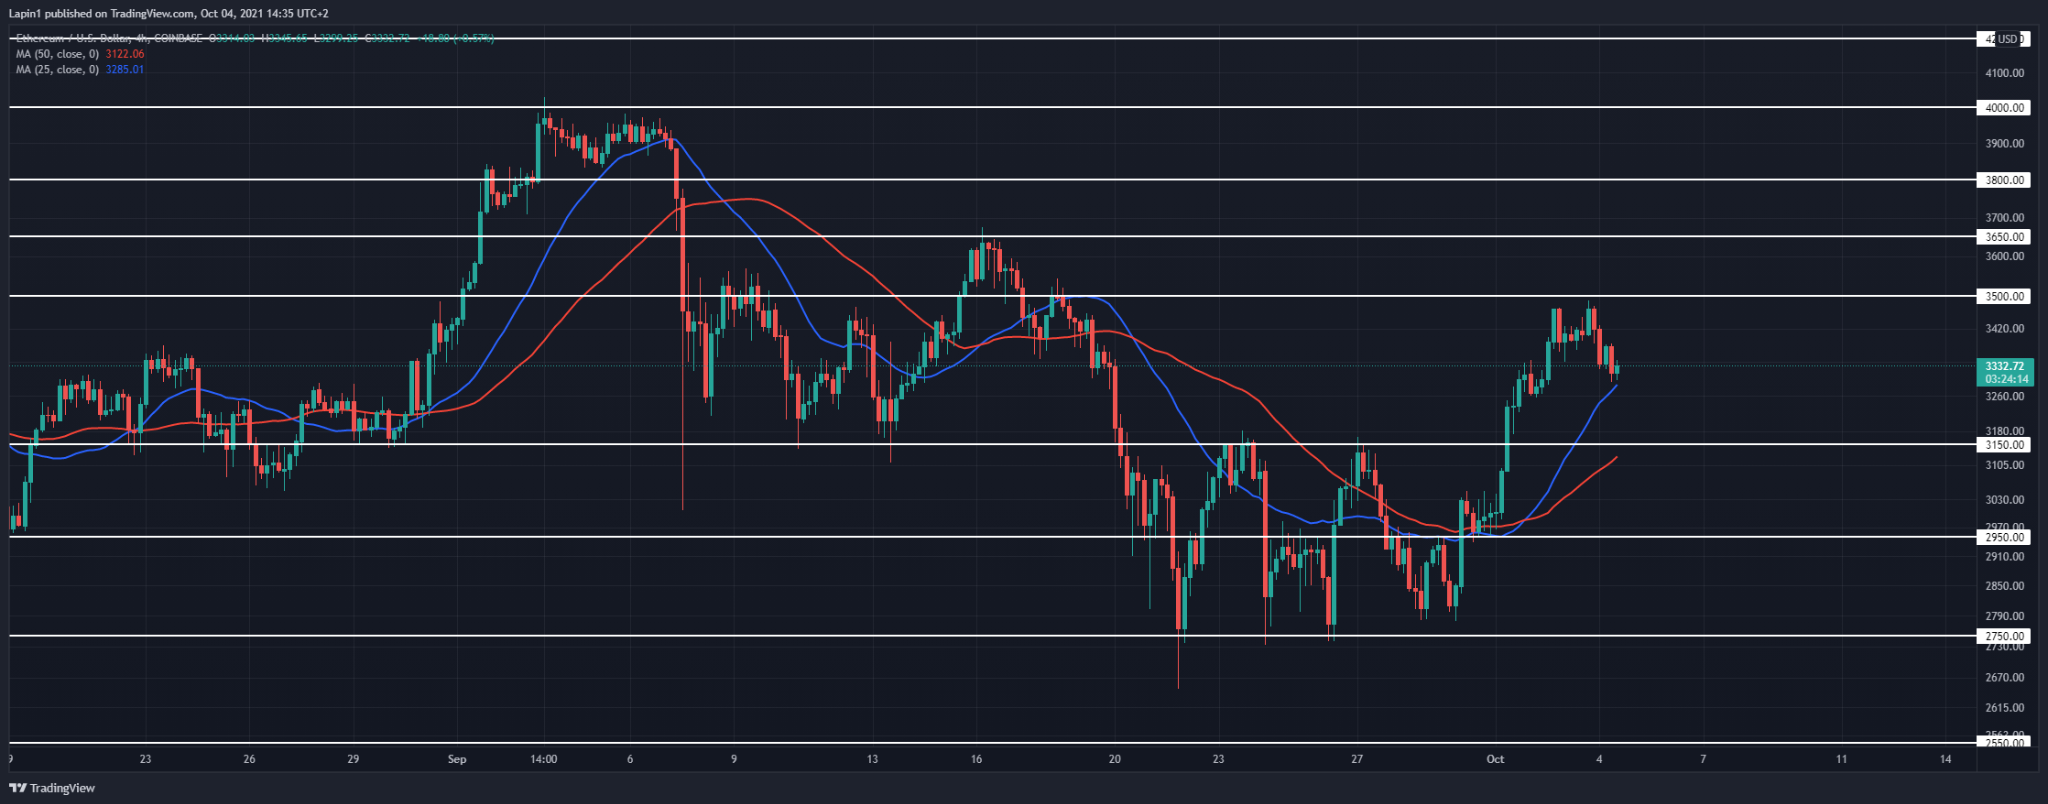 Ethereum Price Analysis: ETH starts to retrace from $3,500, more downside to follow?